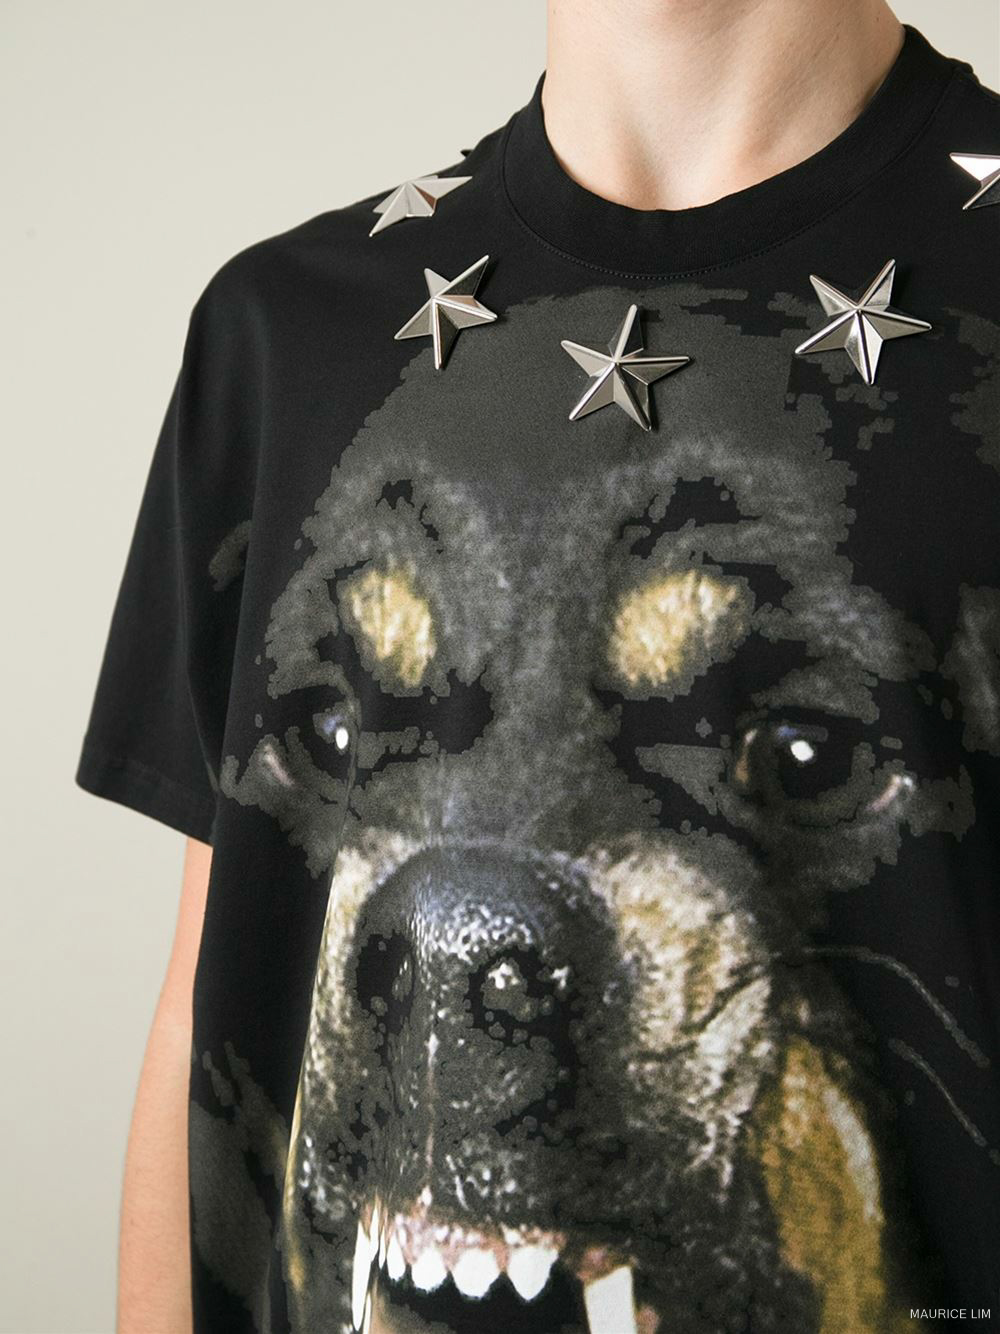 Givenchy Rottweiler Star Appliqué Print Columbian Fit T